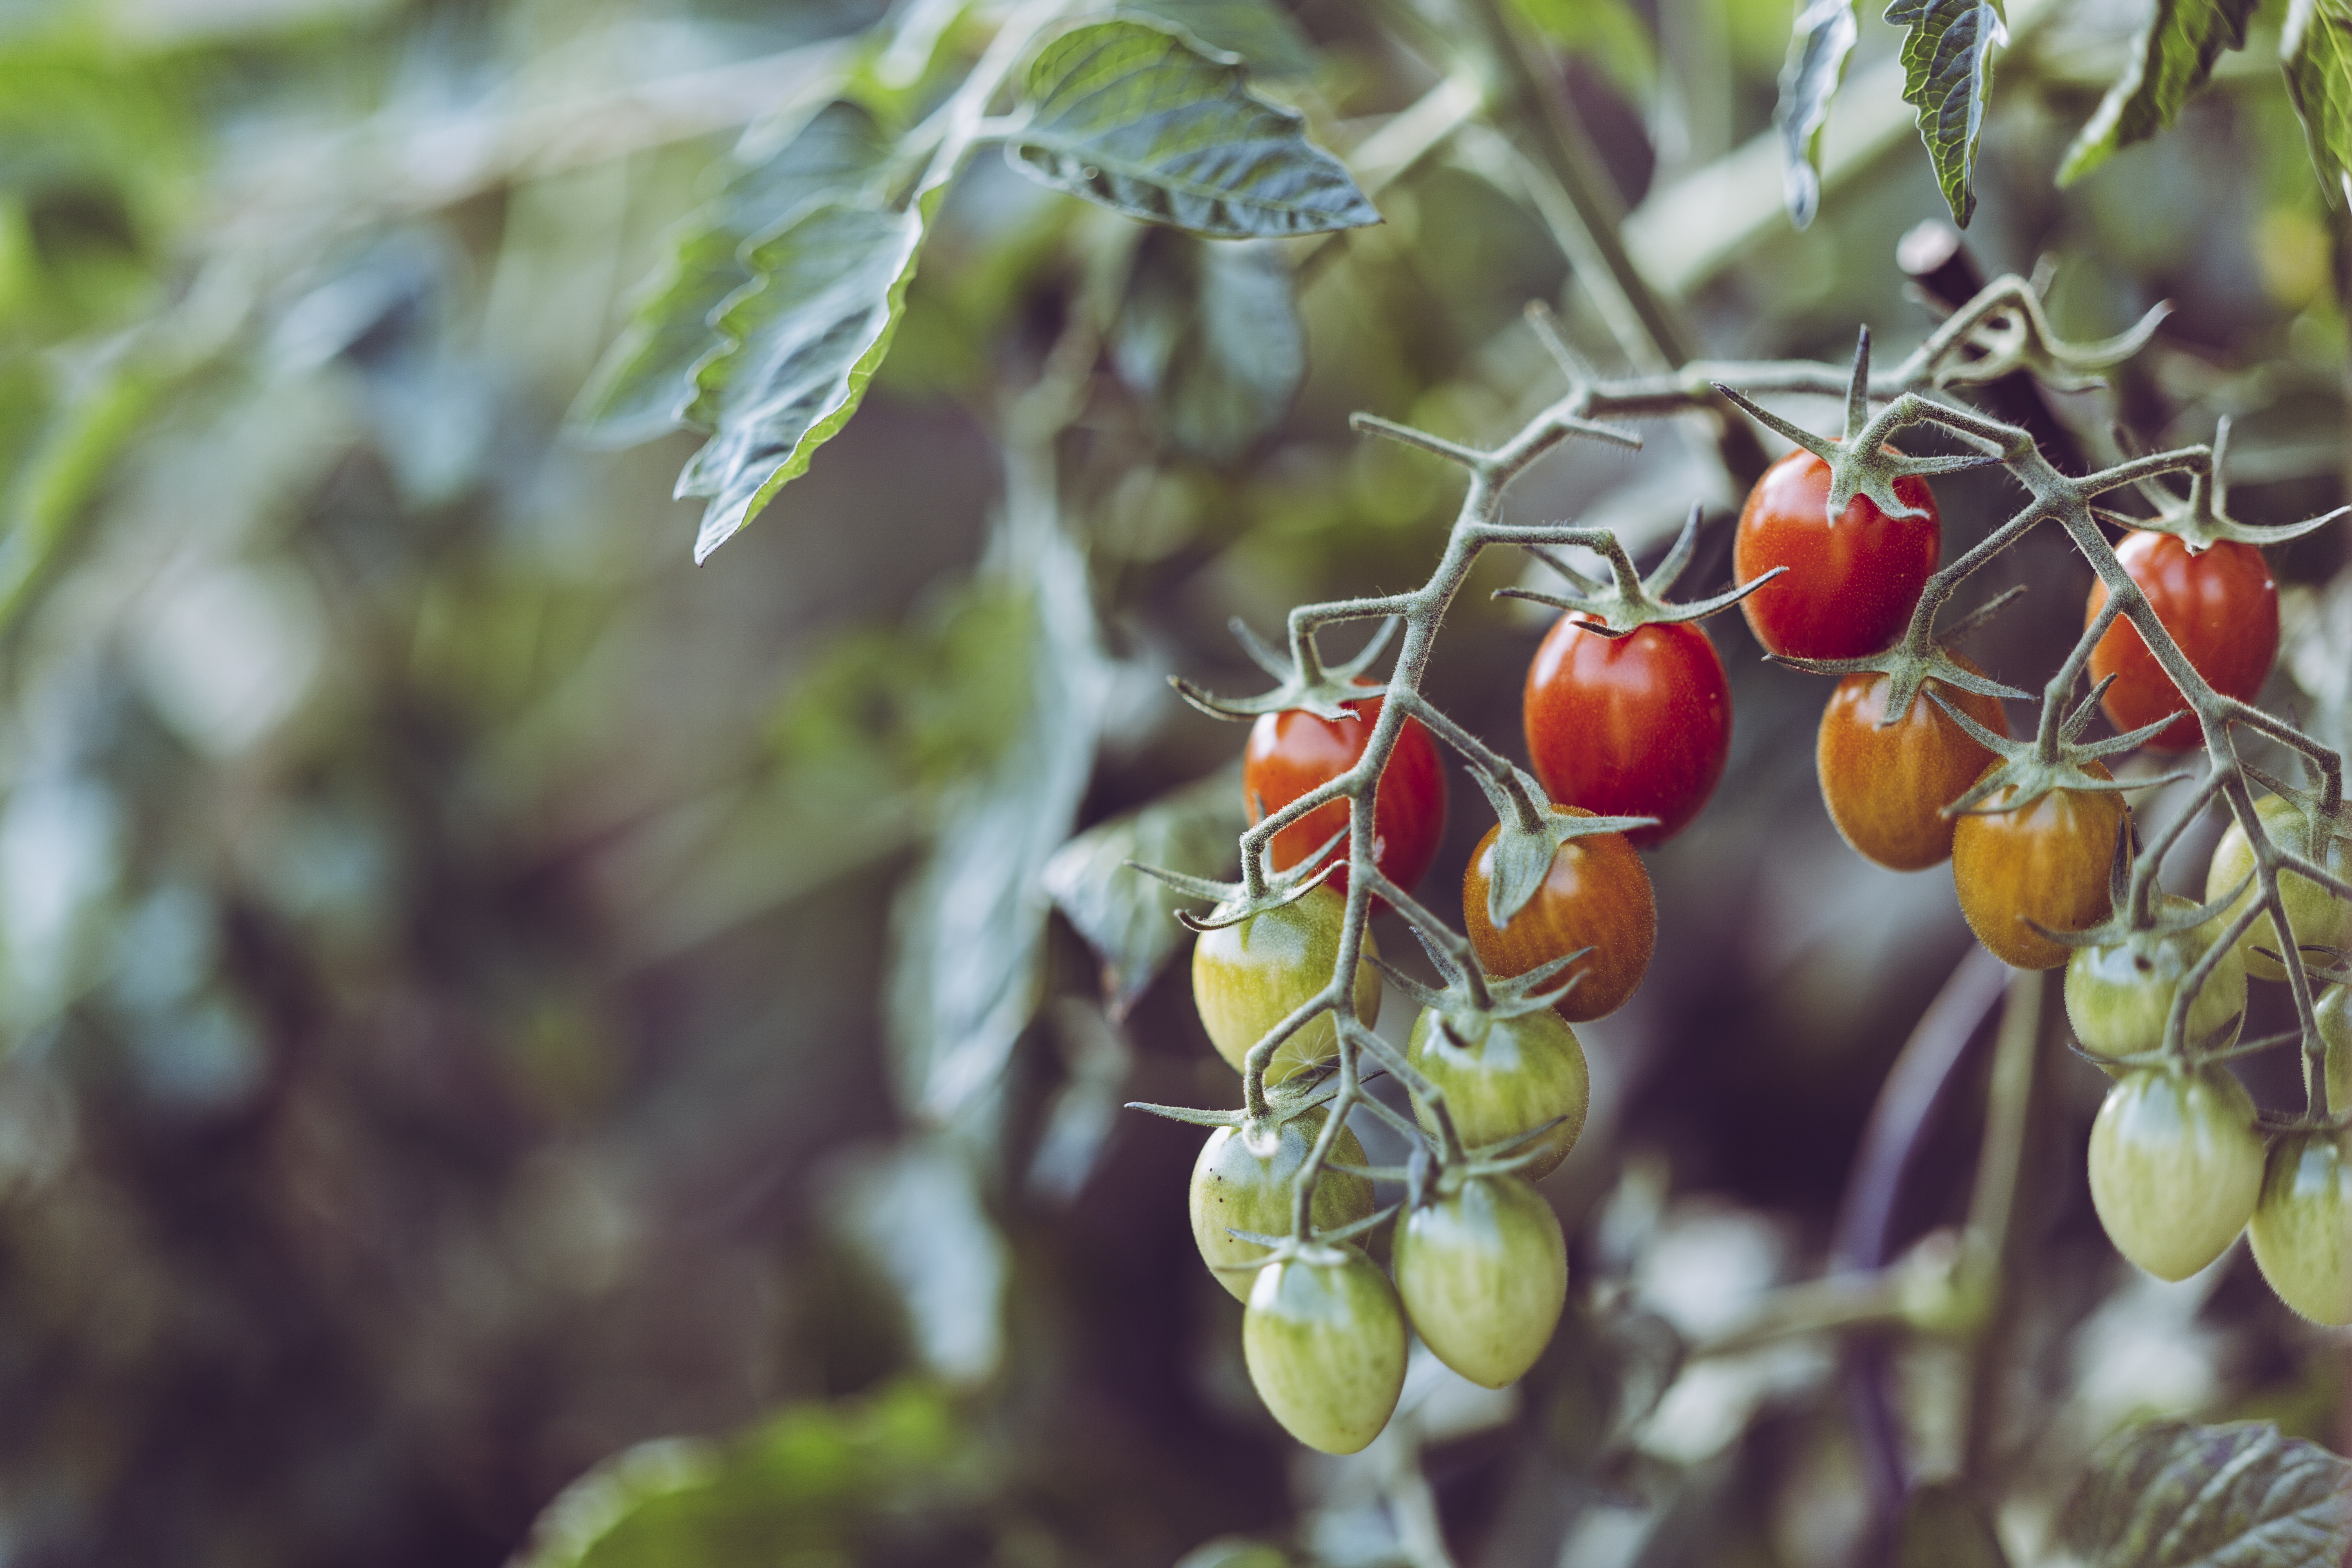 closeup photo of assorted-color tomatoes